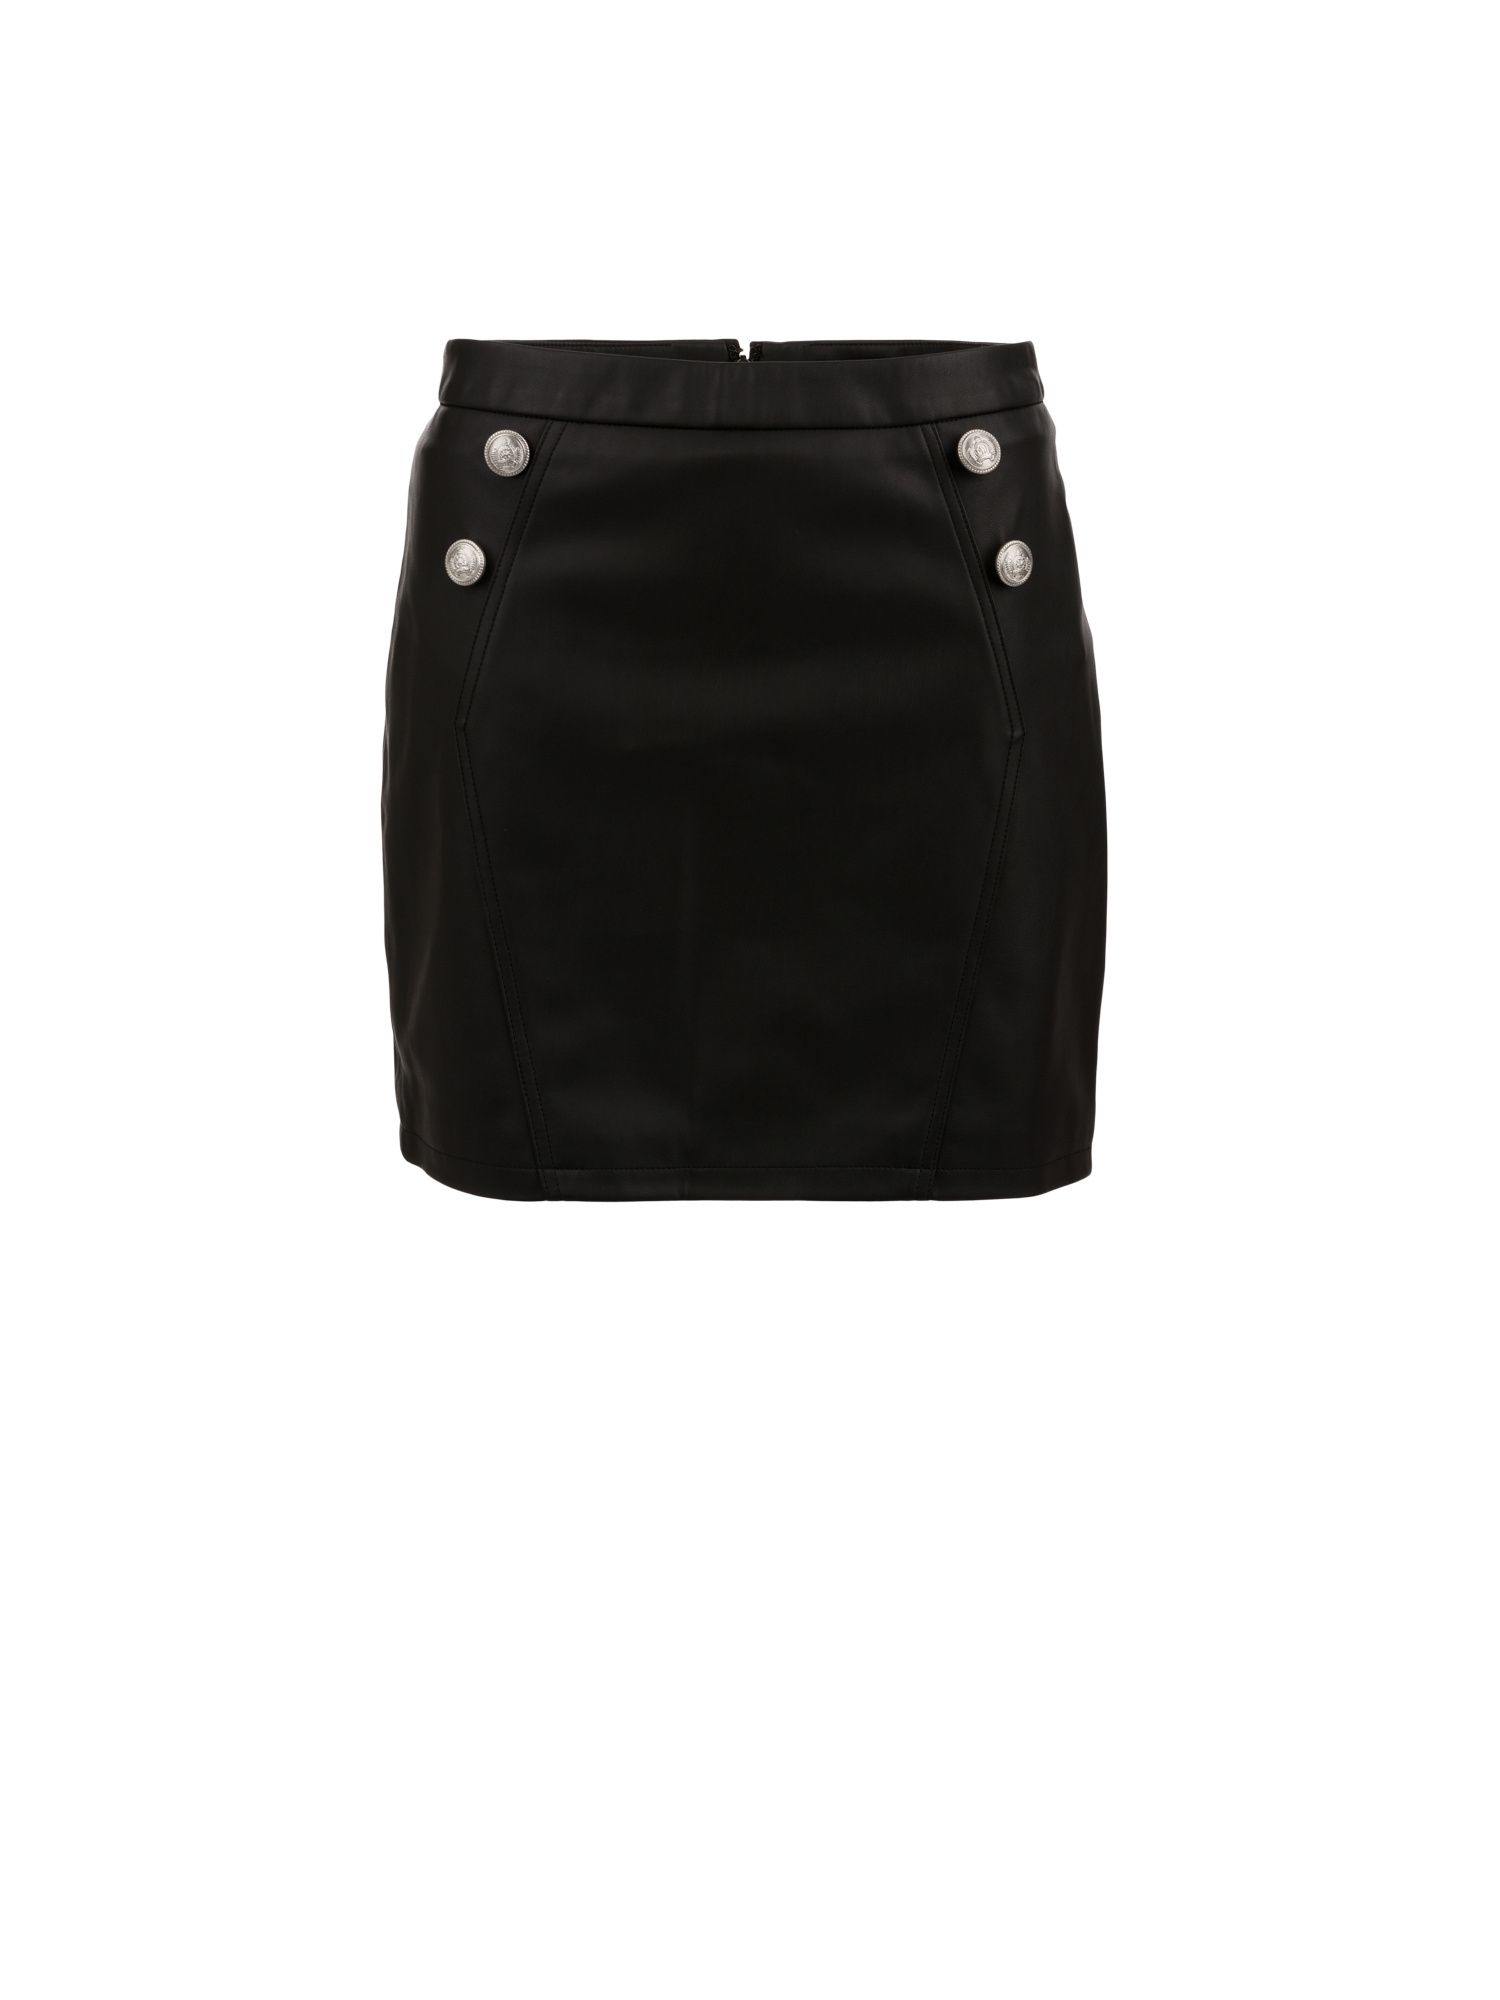 Morgan Morgan Leather-Look Button-Detail Skirt, Black